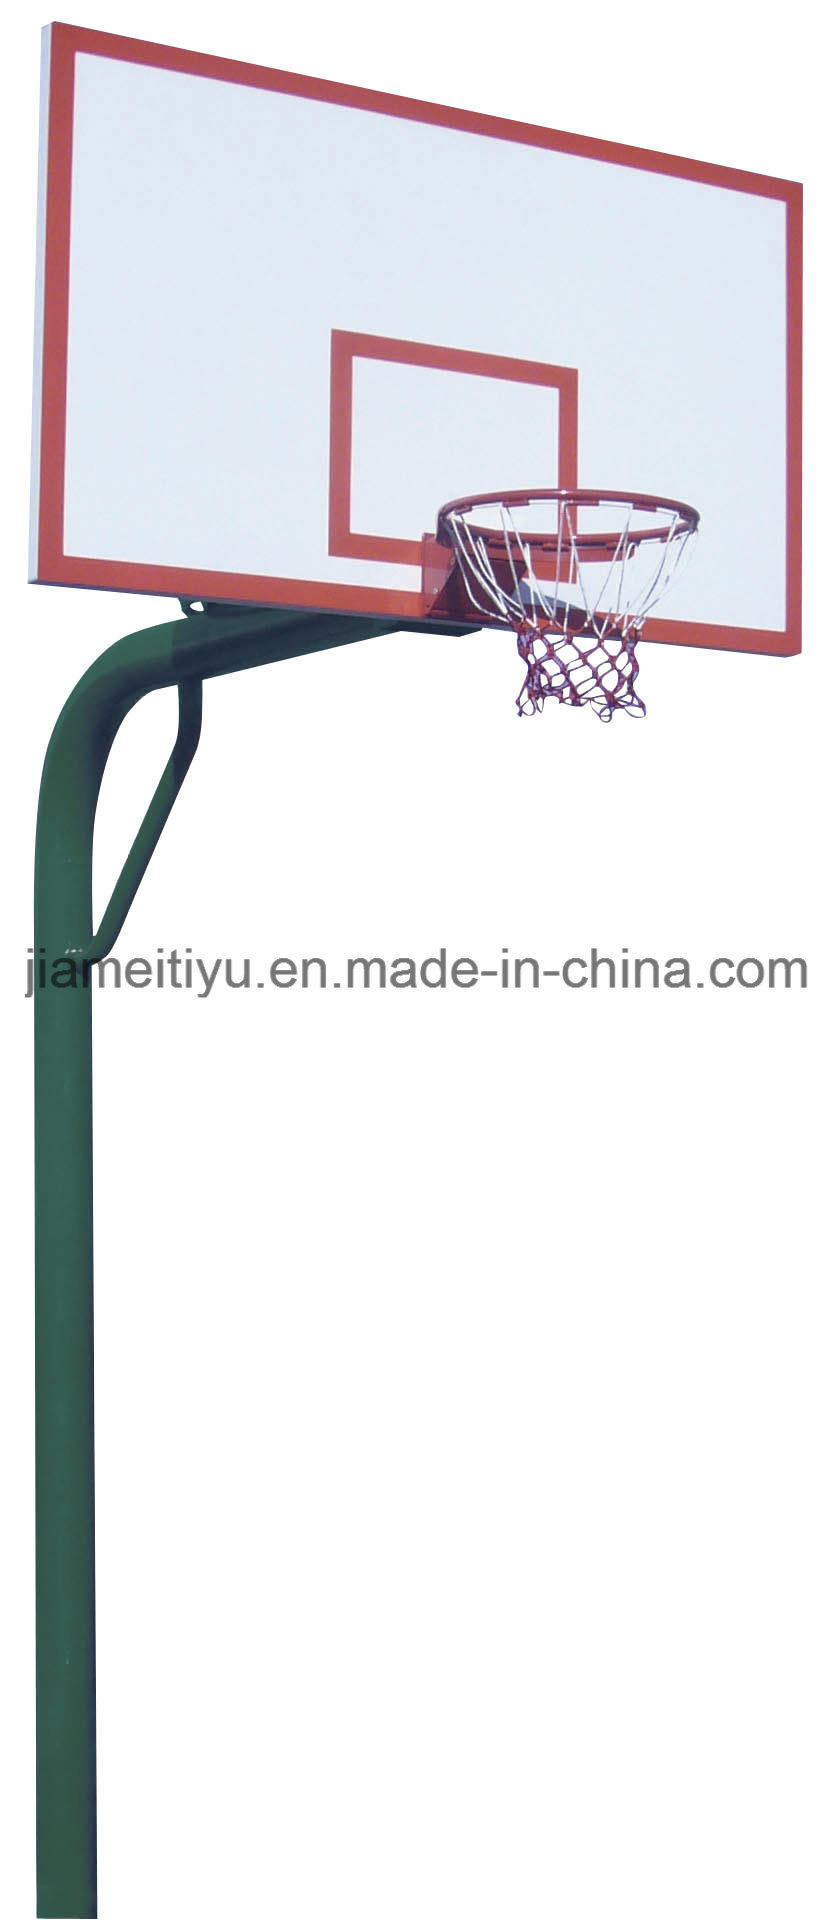 Professional Playground Equipment Basketball Stand Jm-1012xo